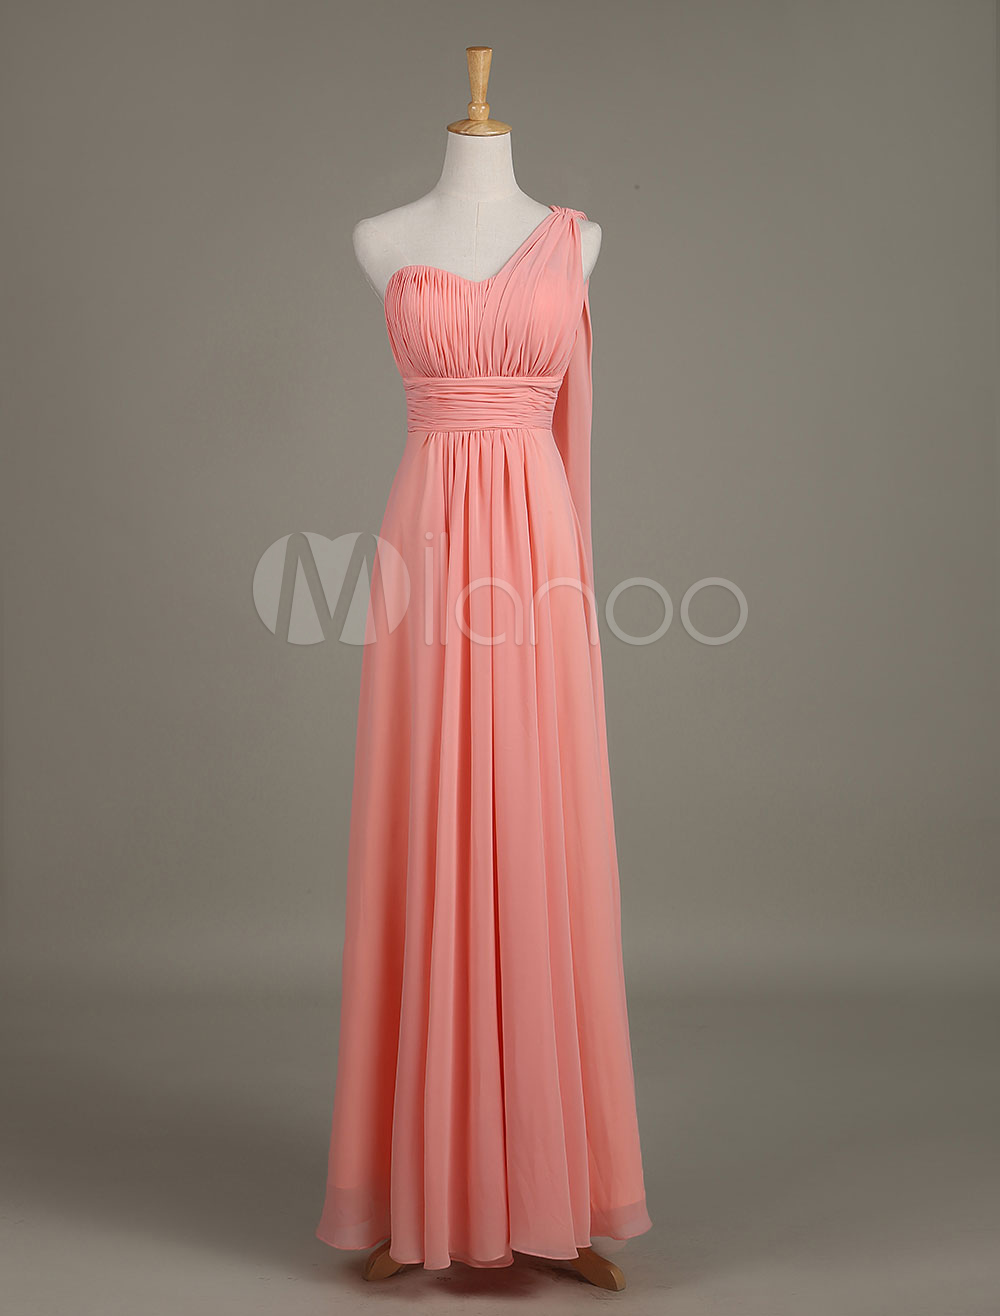 Chiffon Bridesmaid Dress Salmon Sweetheart One Shoulder Ruched A Line Maxi Wedding Party Dress With Side Draping